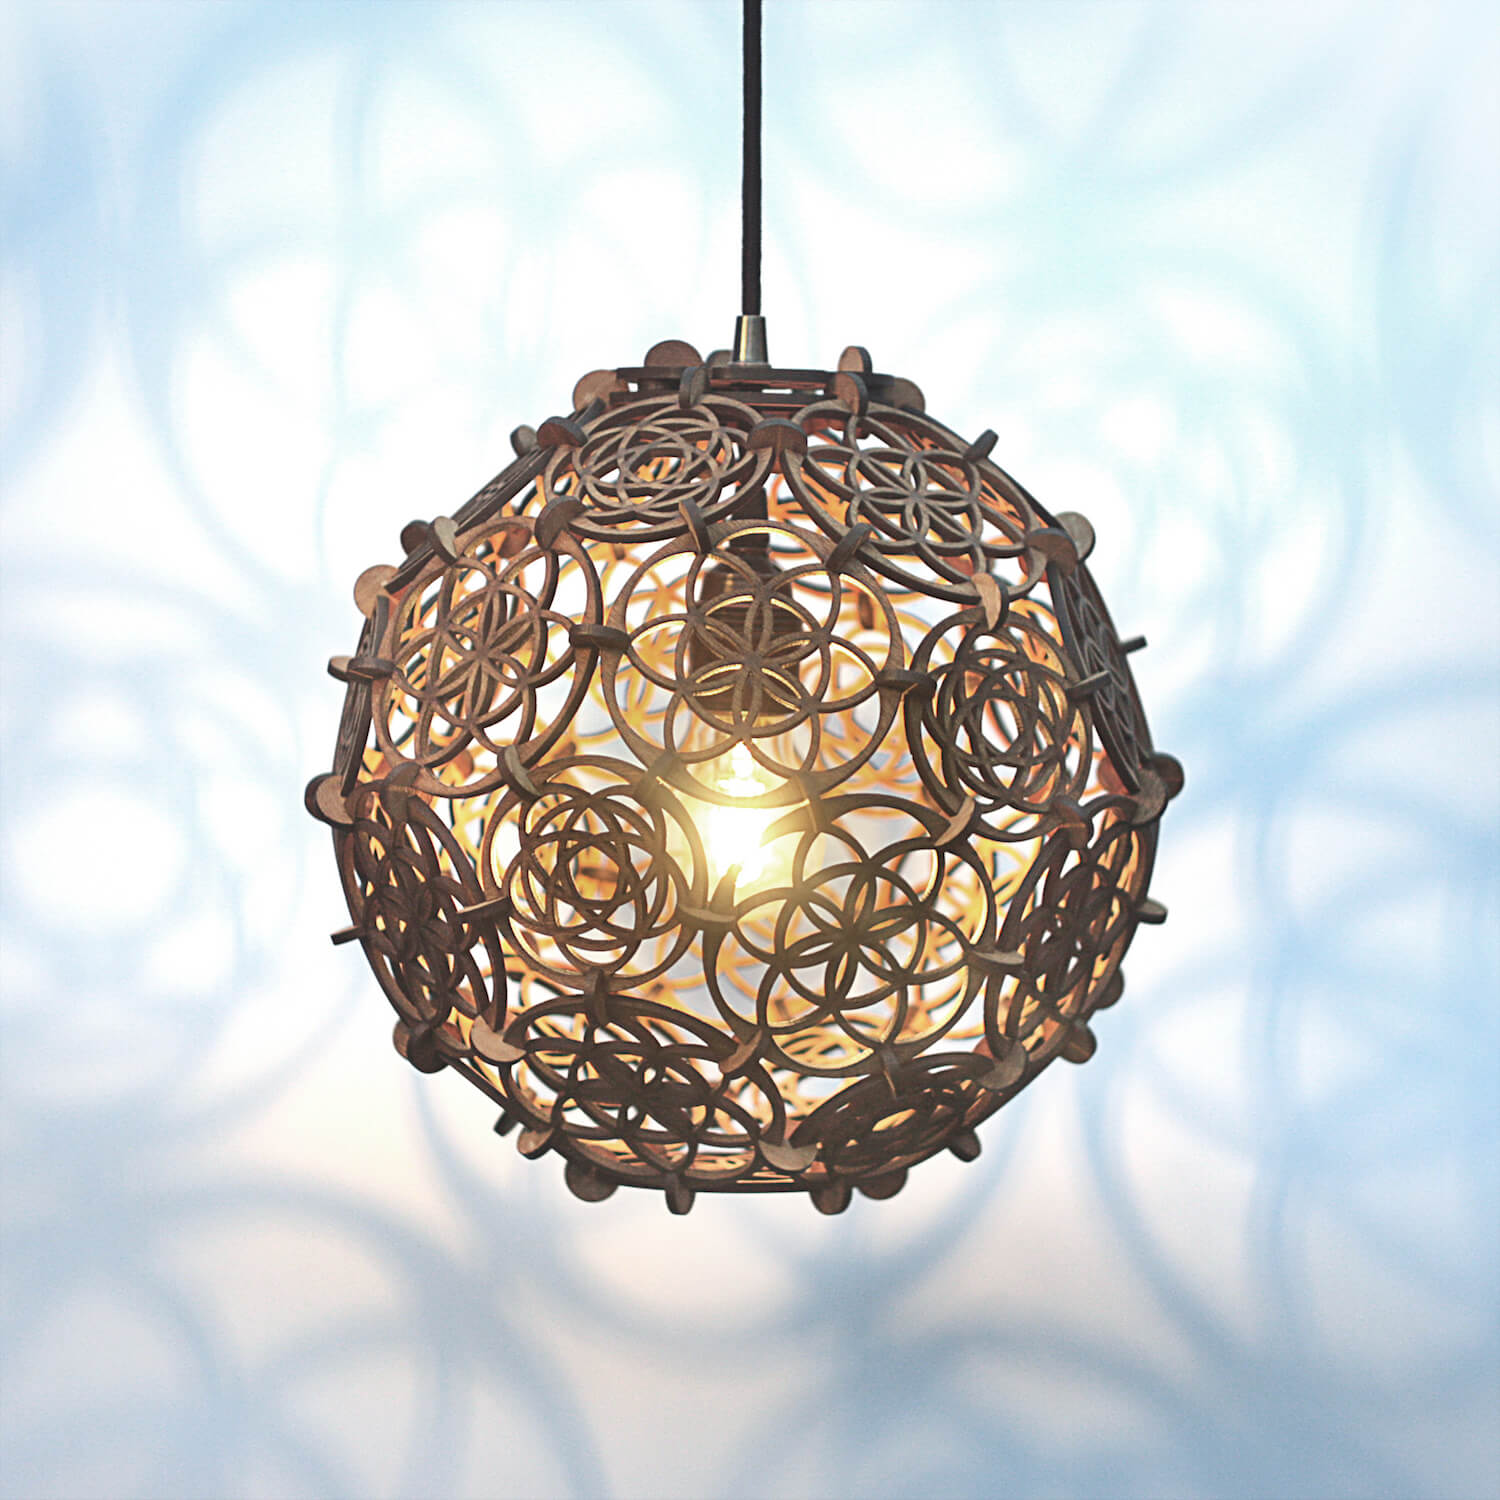 truncated icosahedron lamp